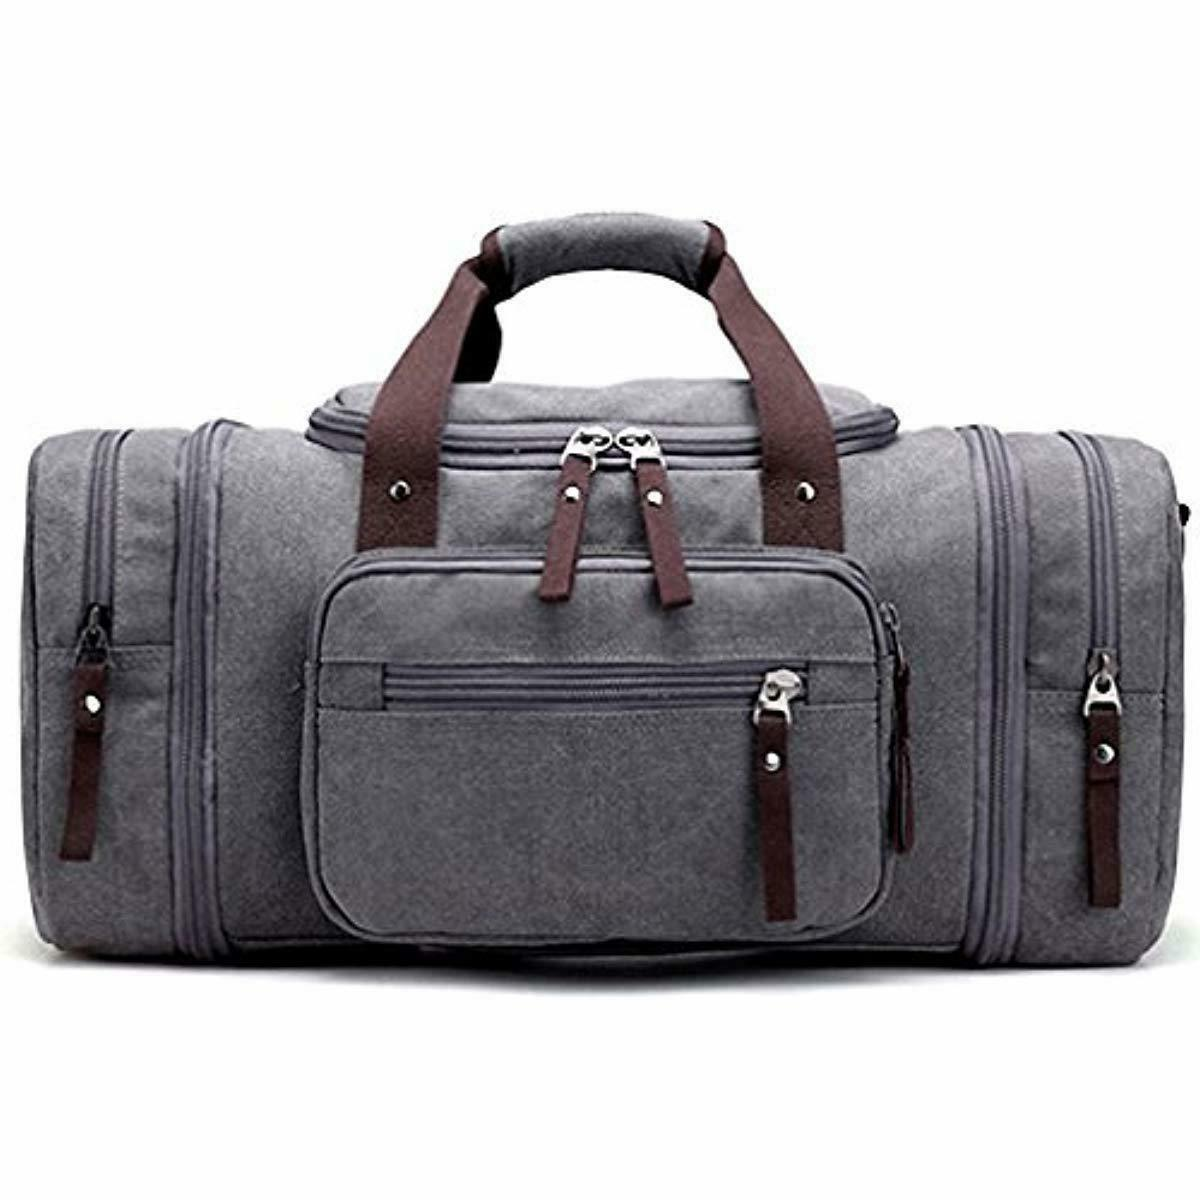 new oversized canvas travel tote luggage weekend